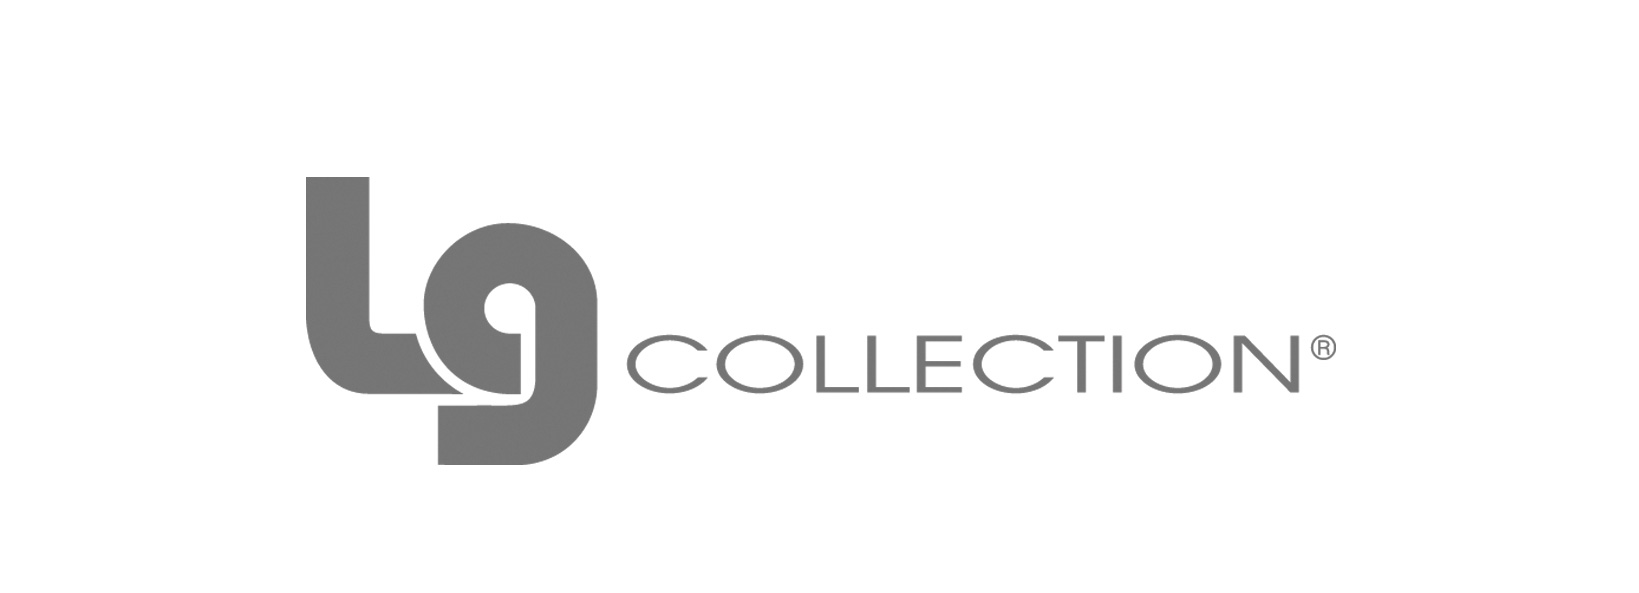 Lg Collection